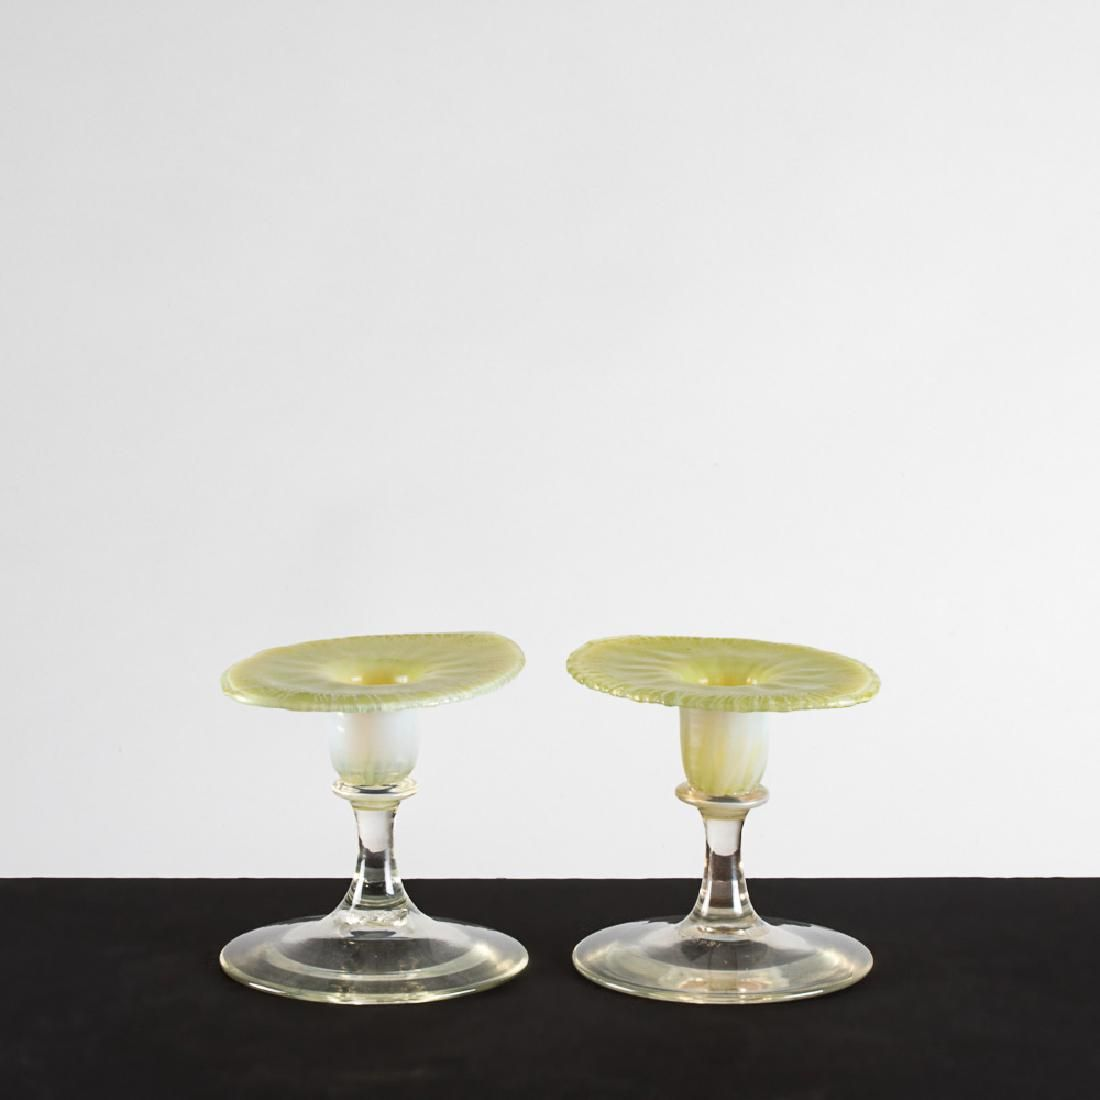 A Pair of Tiffany Yellow Pastel Favrile Glass